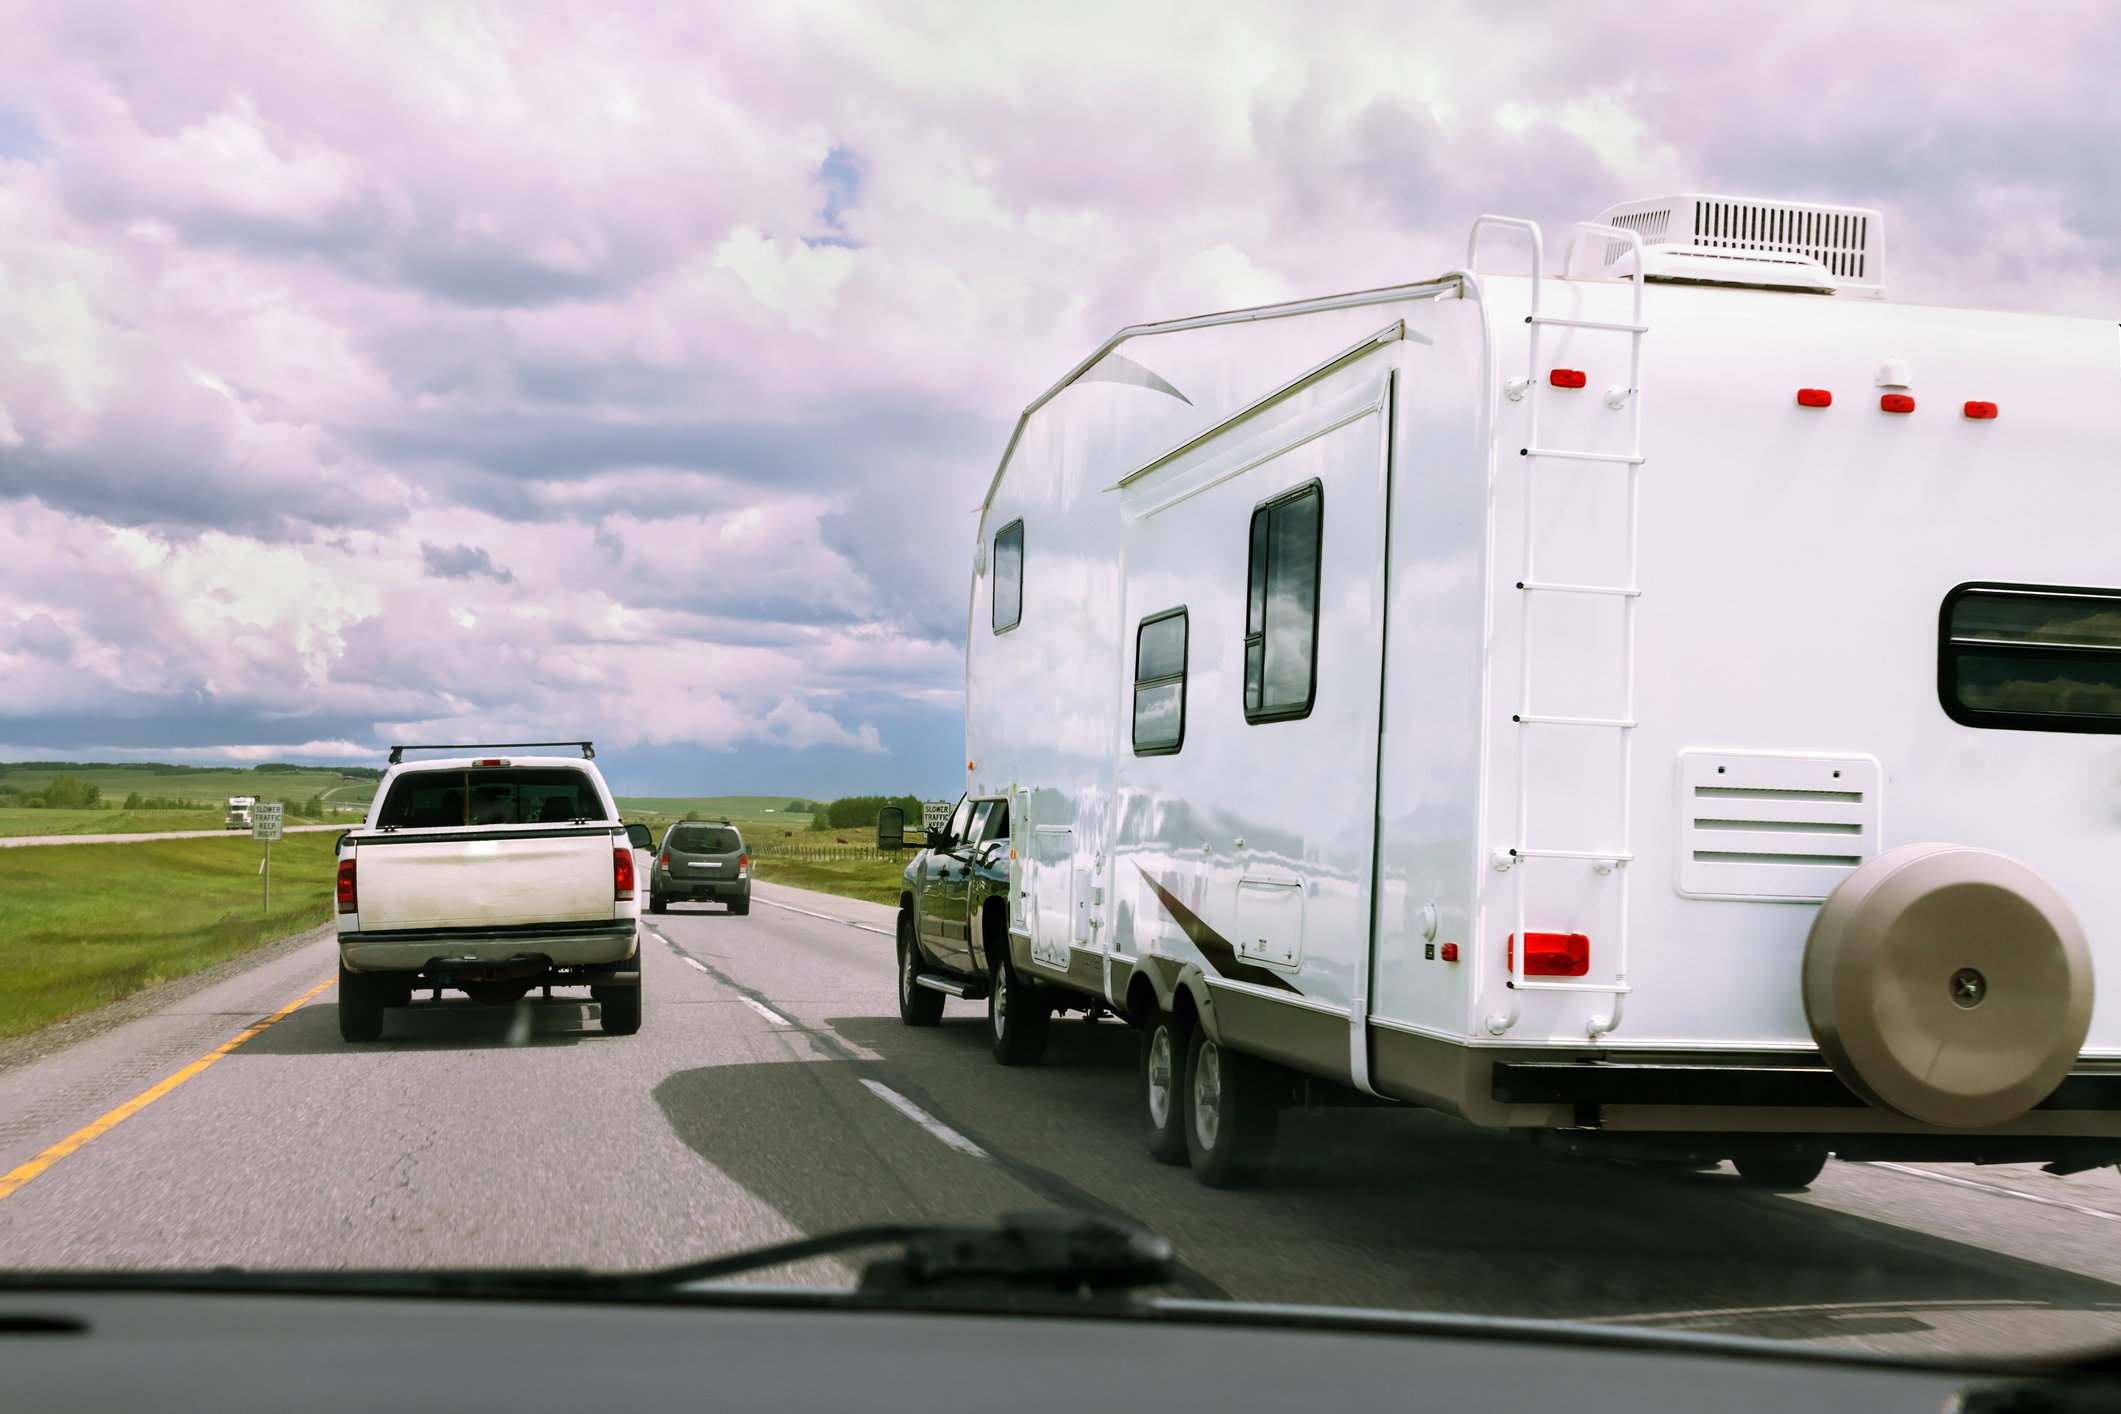 A fifth-wheel driving on a crowded highway